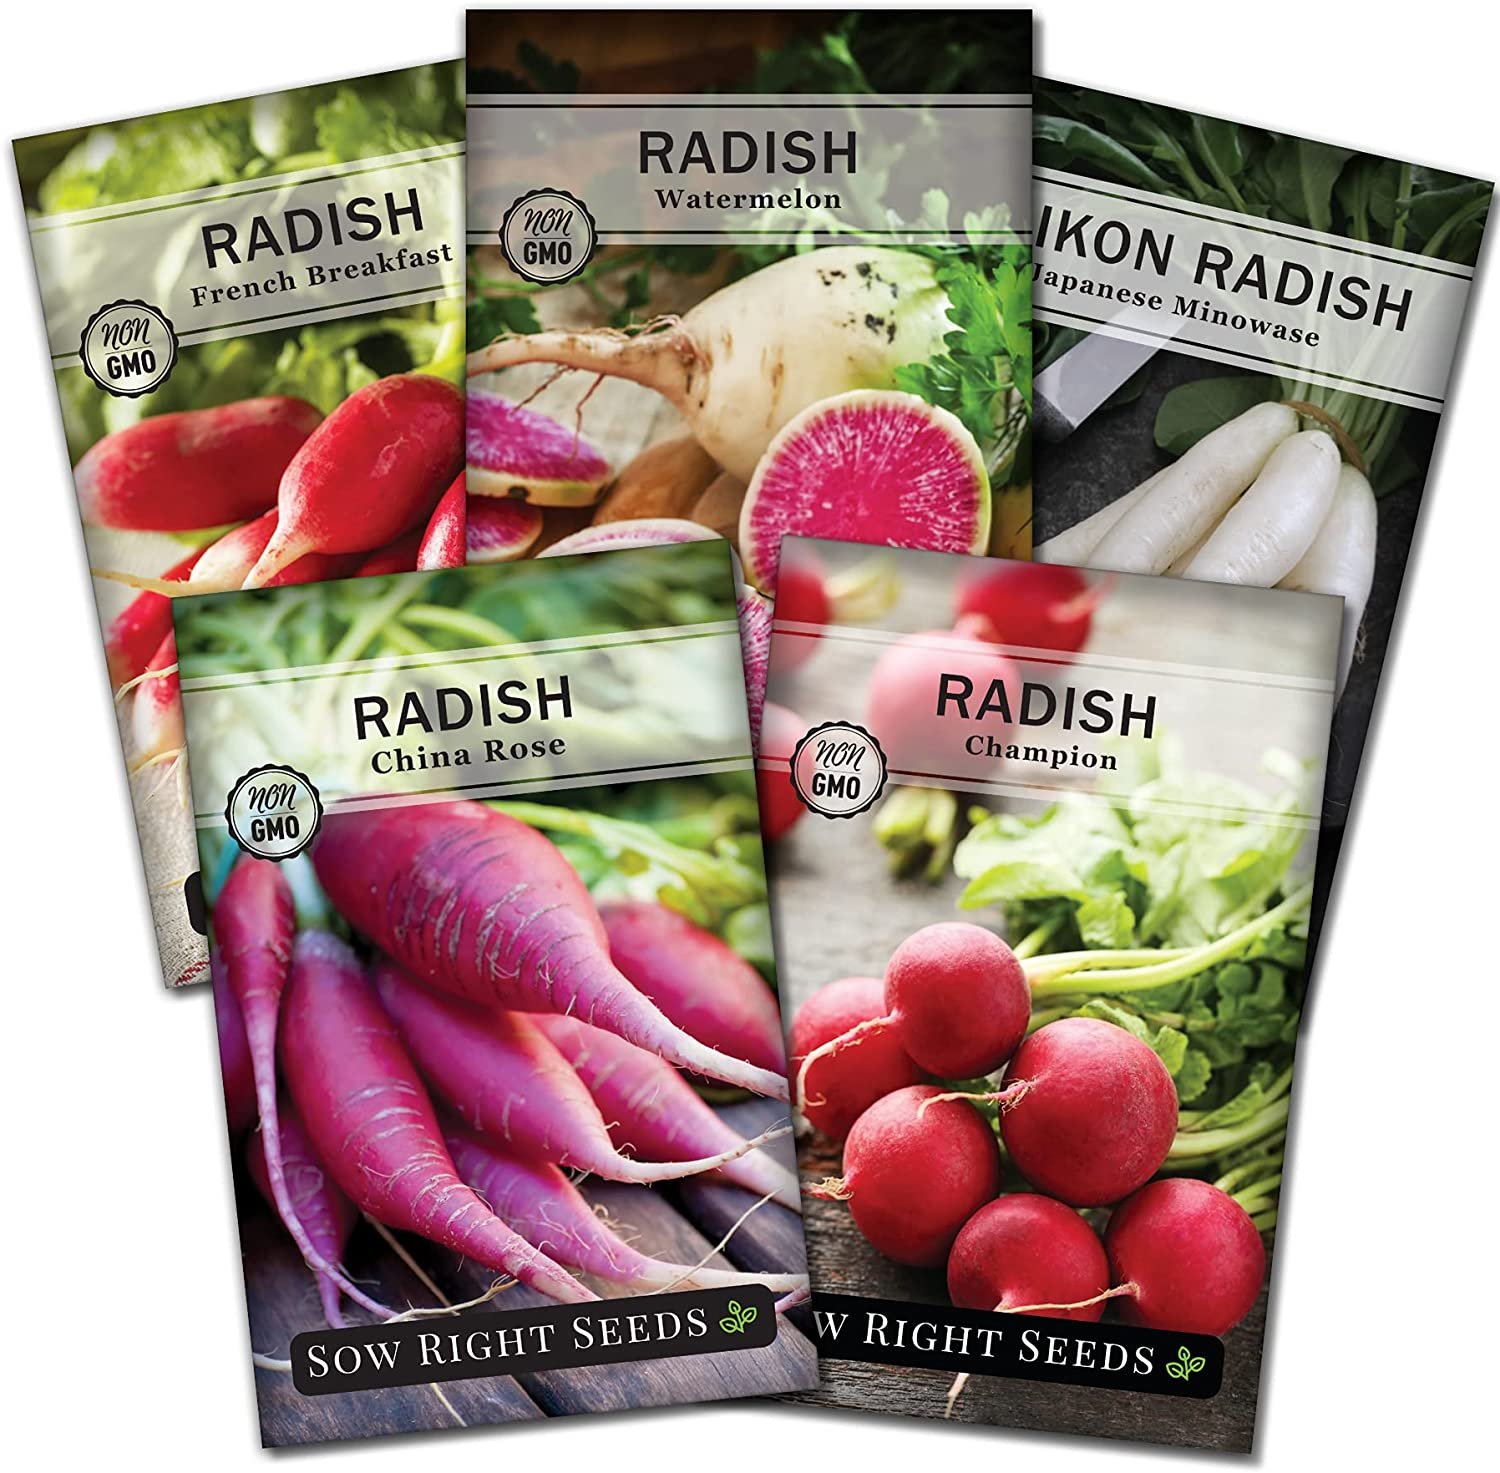 Sow Right Seeds - Radish Seed Collection for Planting - Champion, Watermelon, French Breakfast, China Rose, and Minowase (Diakon) Varieties, Non-GMO Heirloom Seed to Plant Home Vegetable Garden